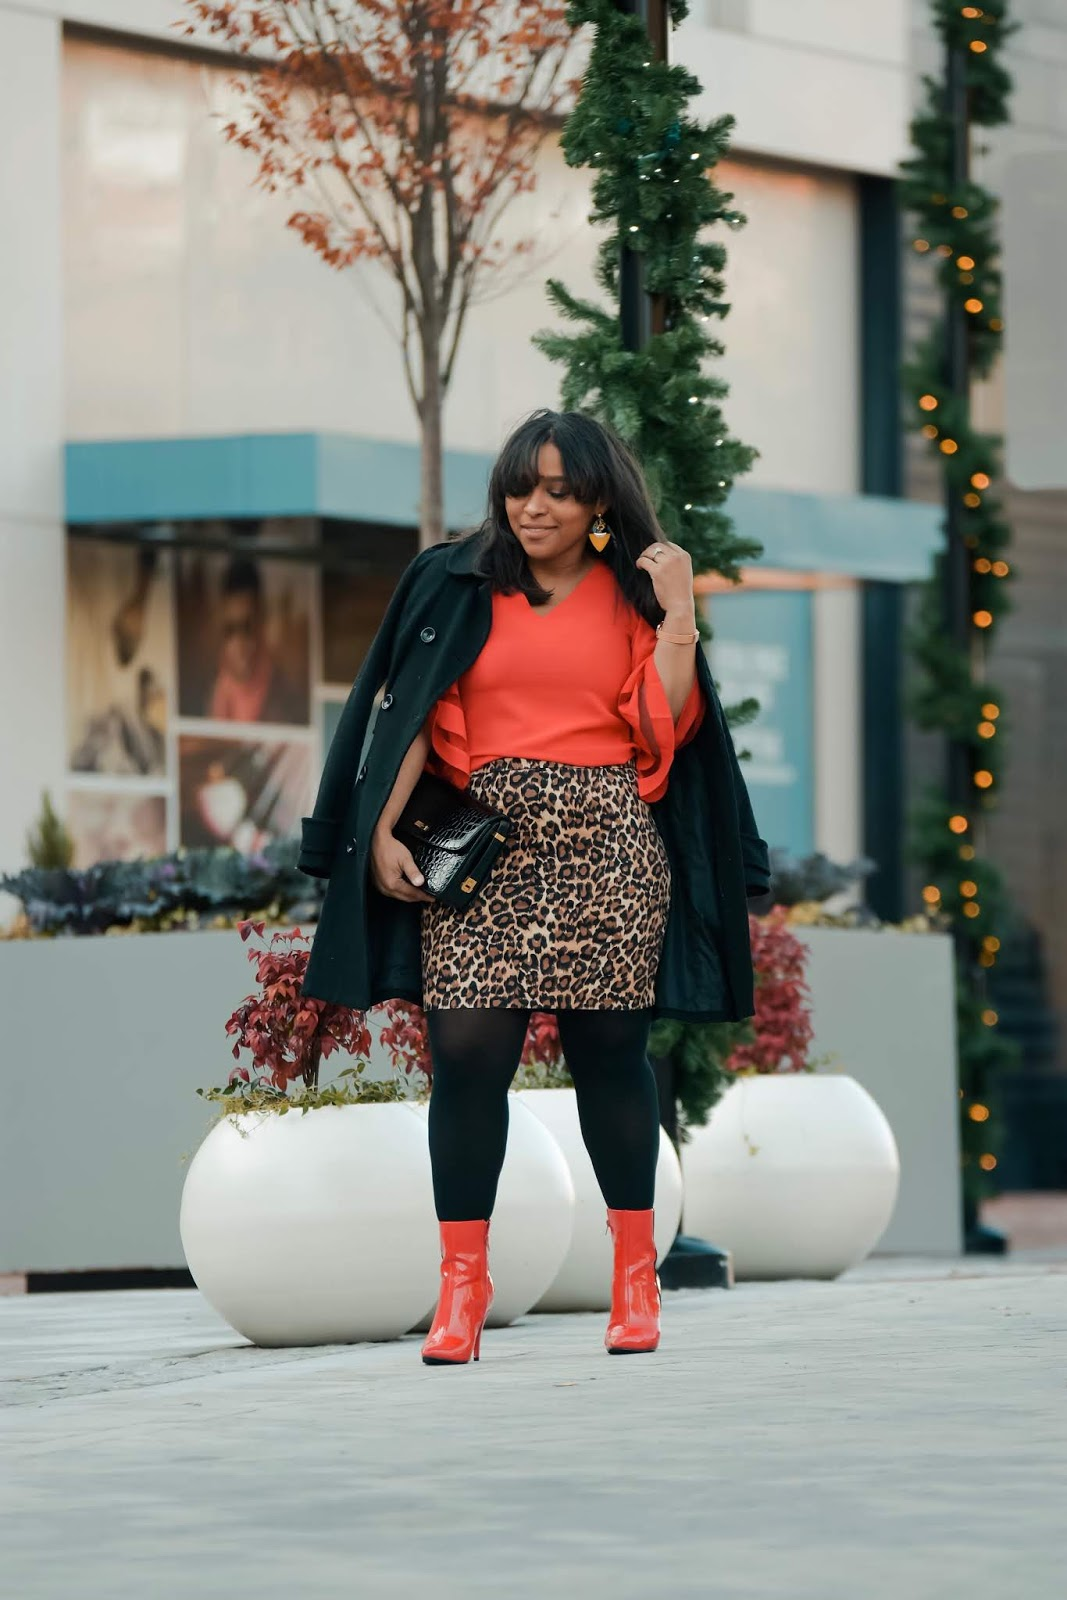 Holiday outfit ideas, red with leopard, holiday looks, lookbookdaily, holiday party oufit, bell sleeve